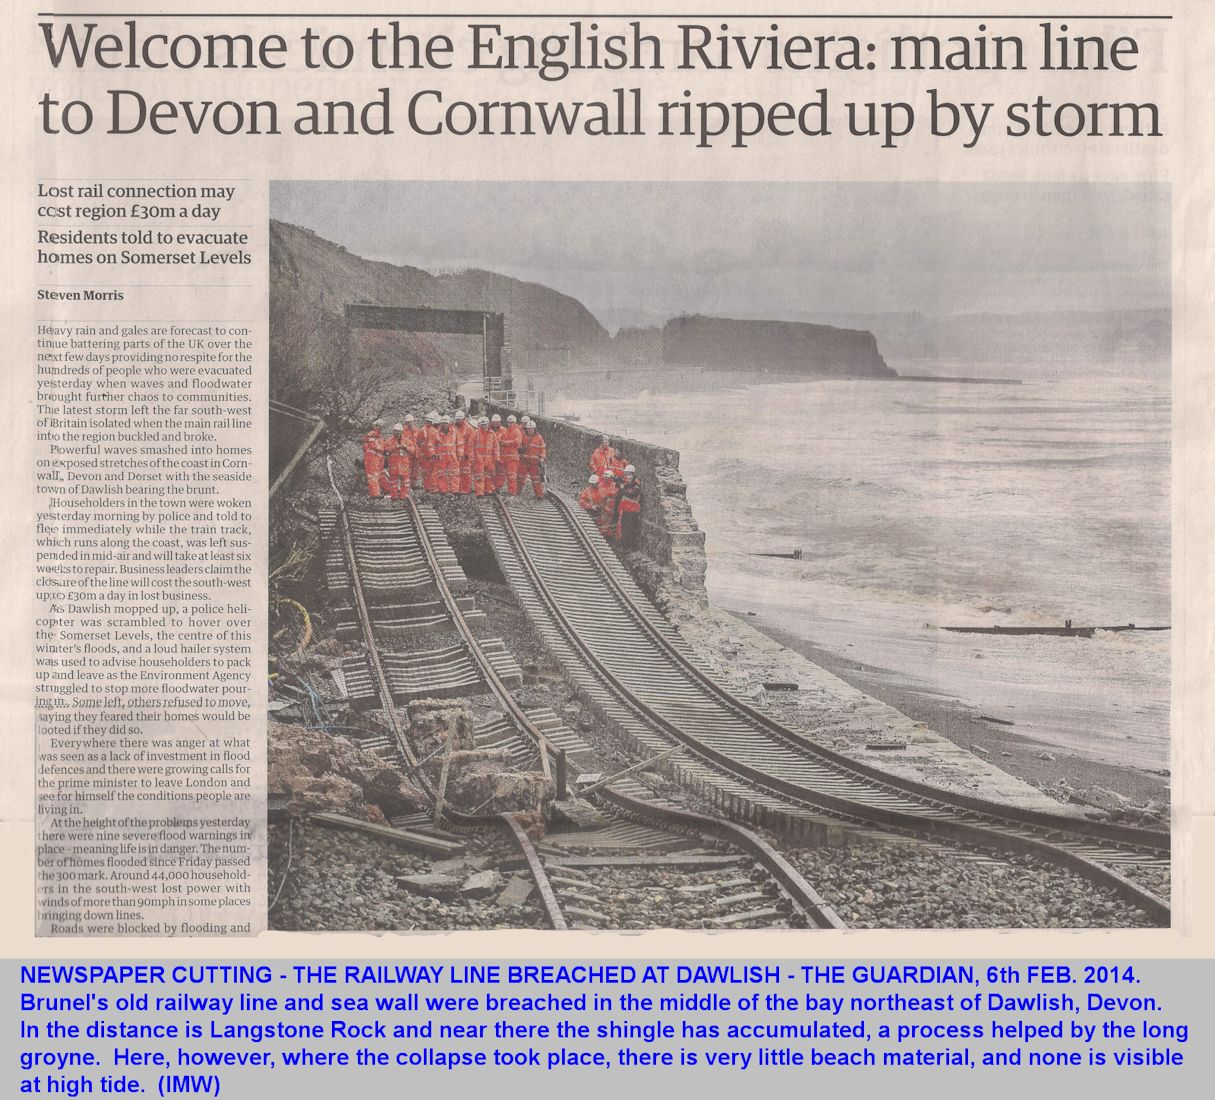 The breach in the railway line and sea wall at Dawlish, Devon, 6th February 2014, newspaper cutting